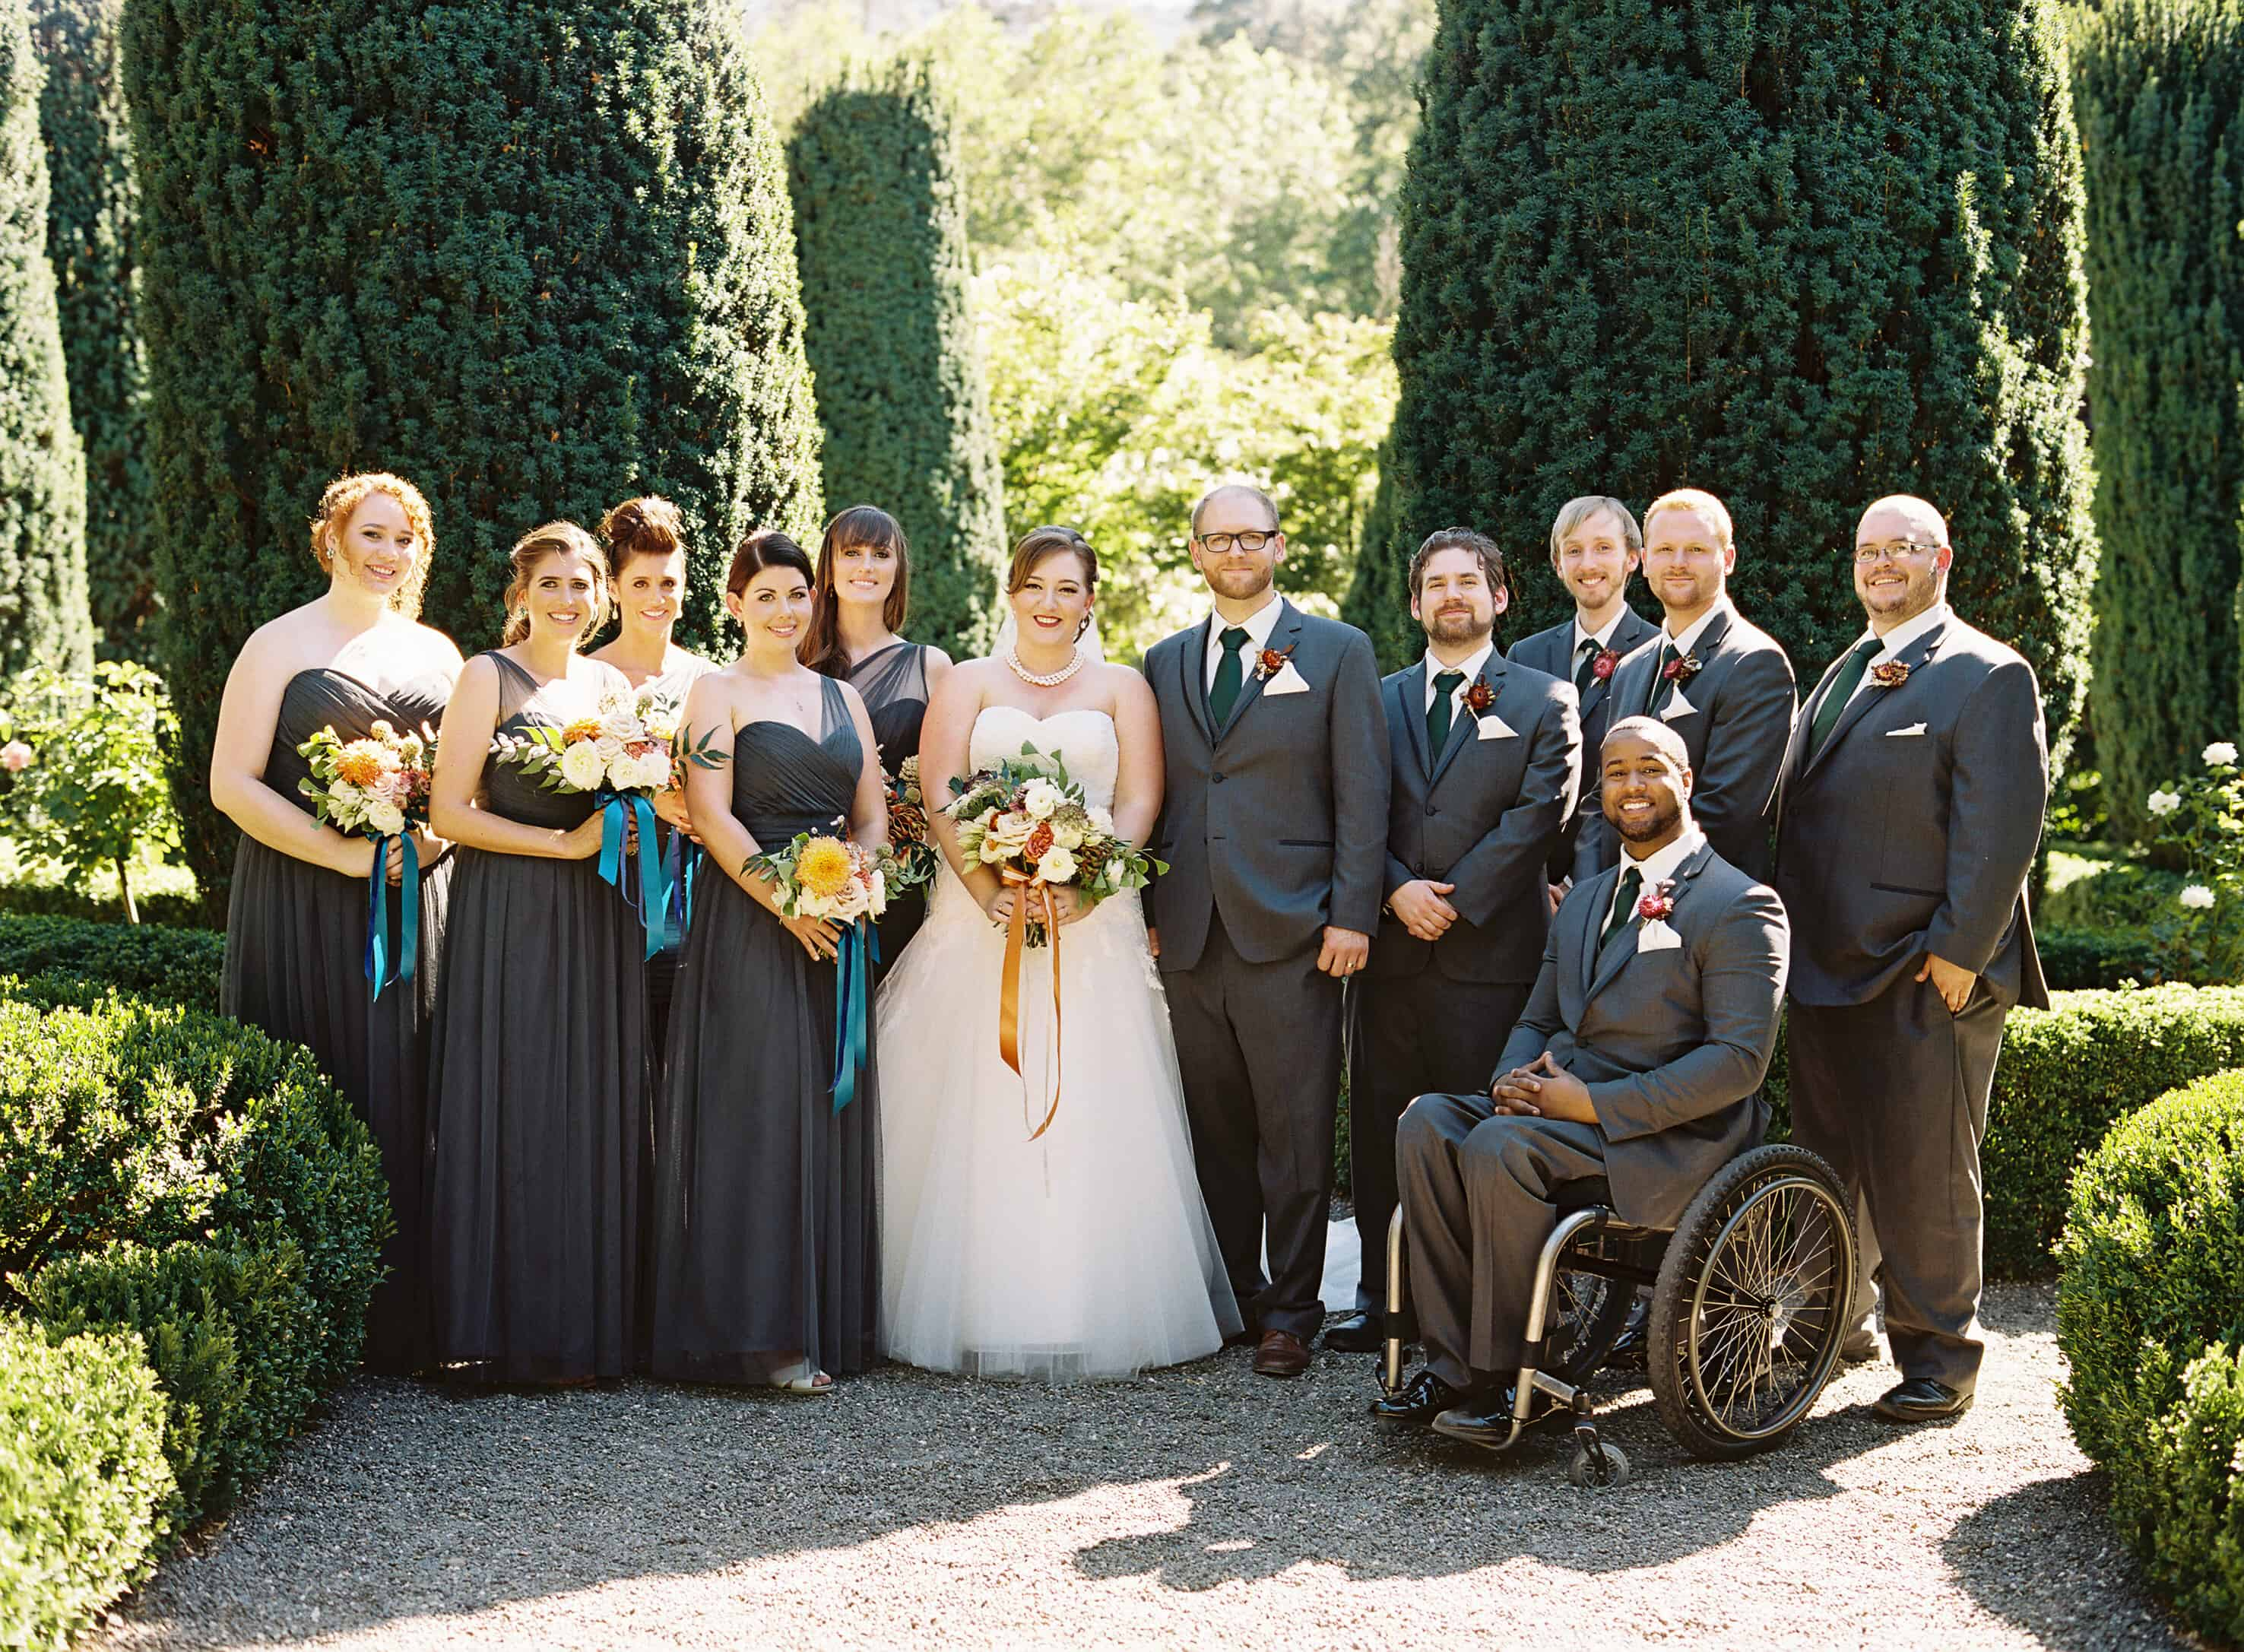 group formal portrait of wedding party